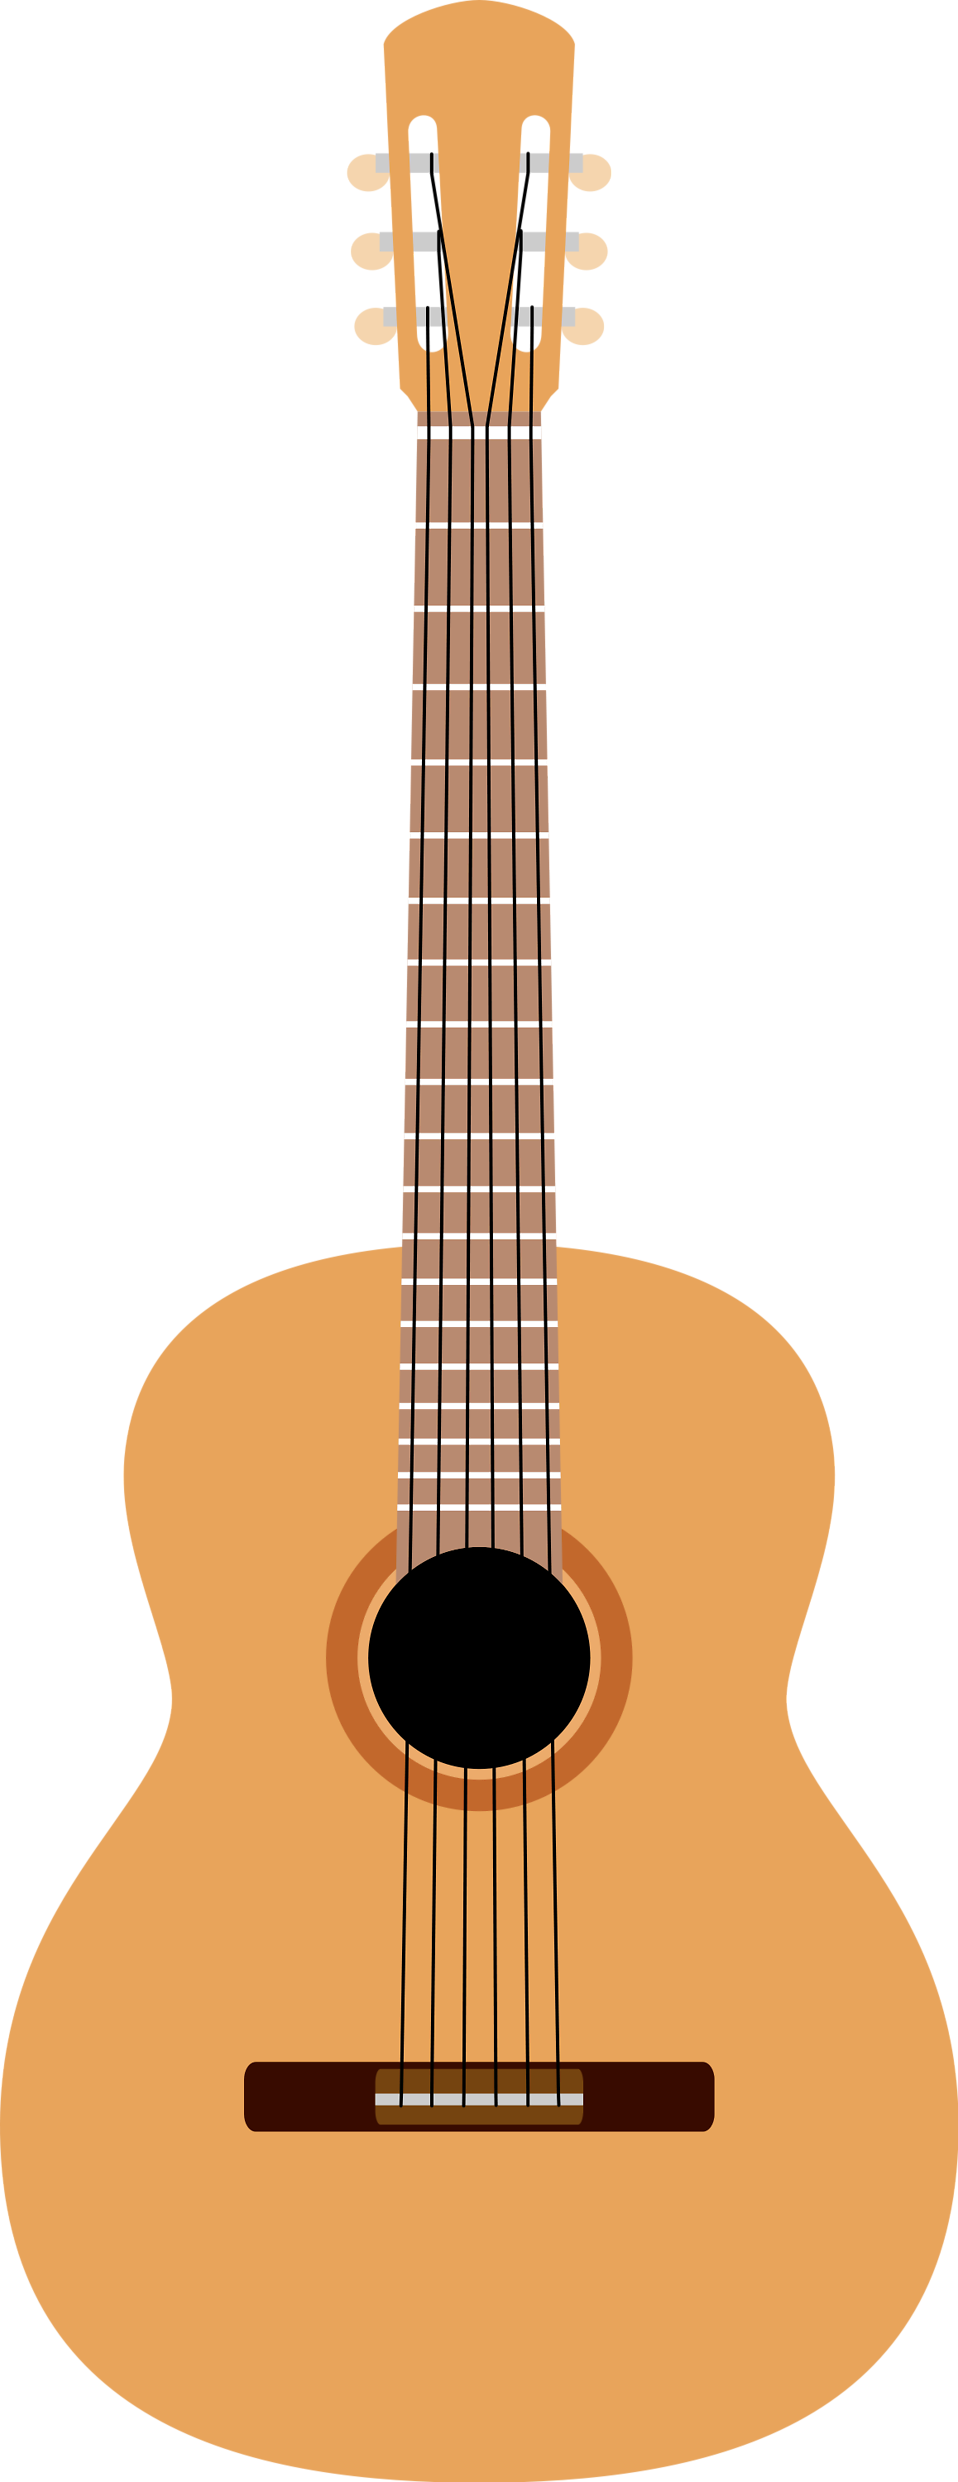 Background clipart guitar #11